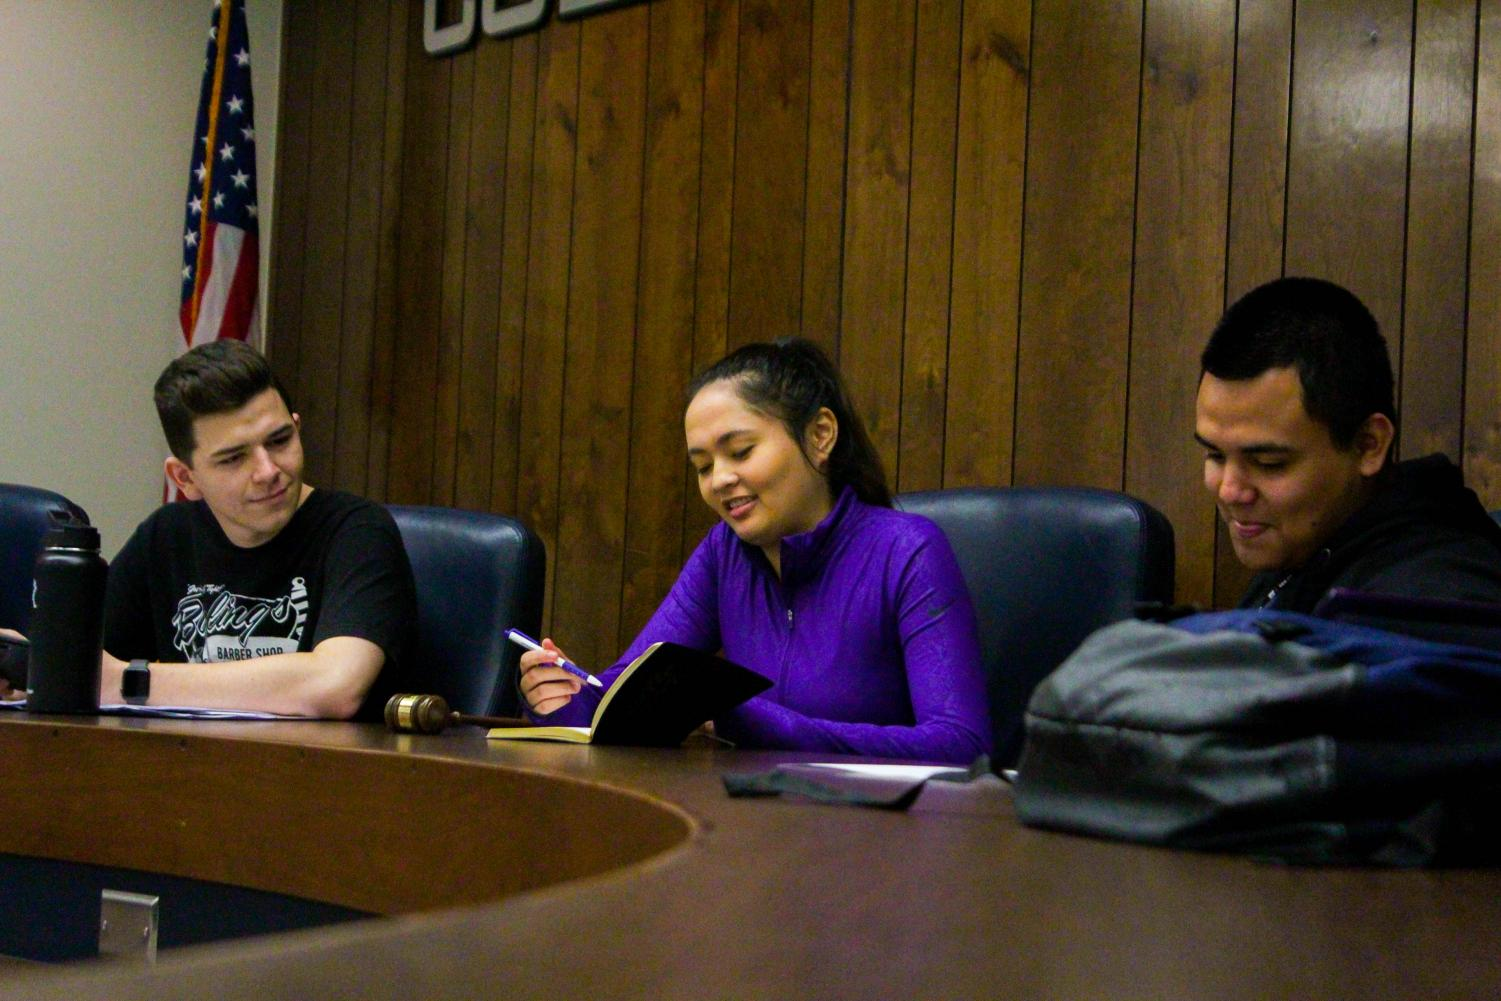 Kenneth O'Leary (left), Isabella O'Keeffe (center), Antonio Gutierrez (right) prepare to begin their meeting.